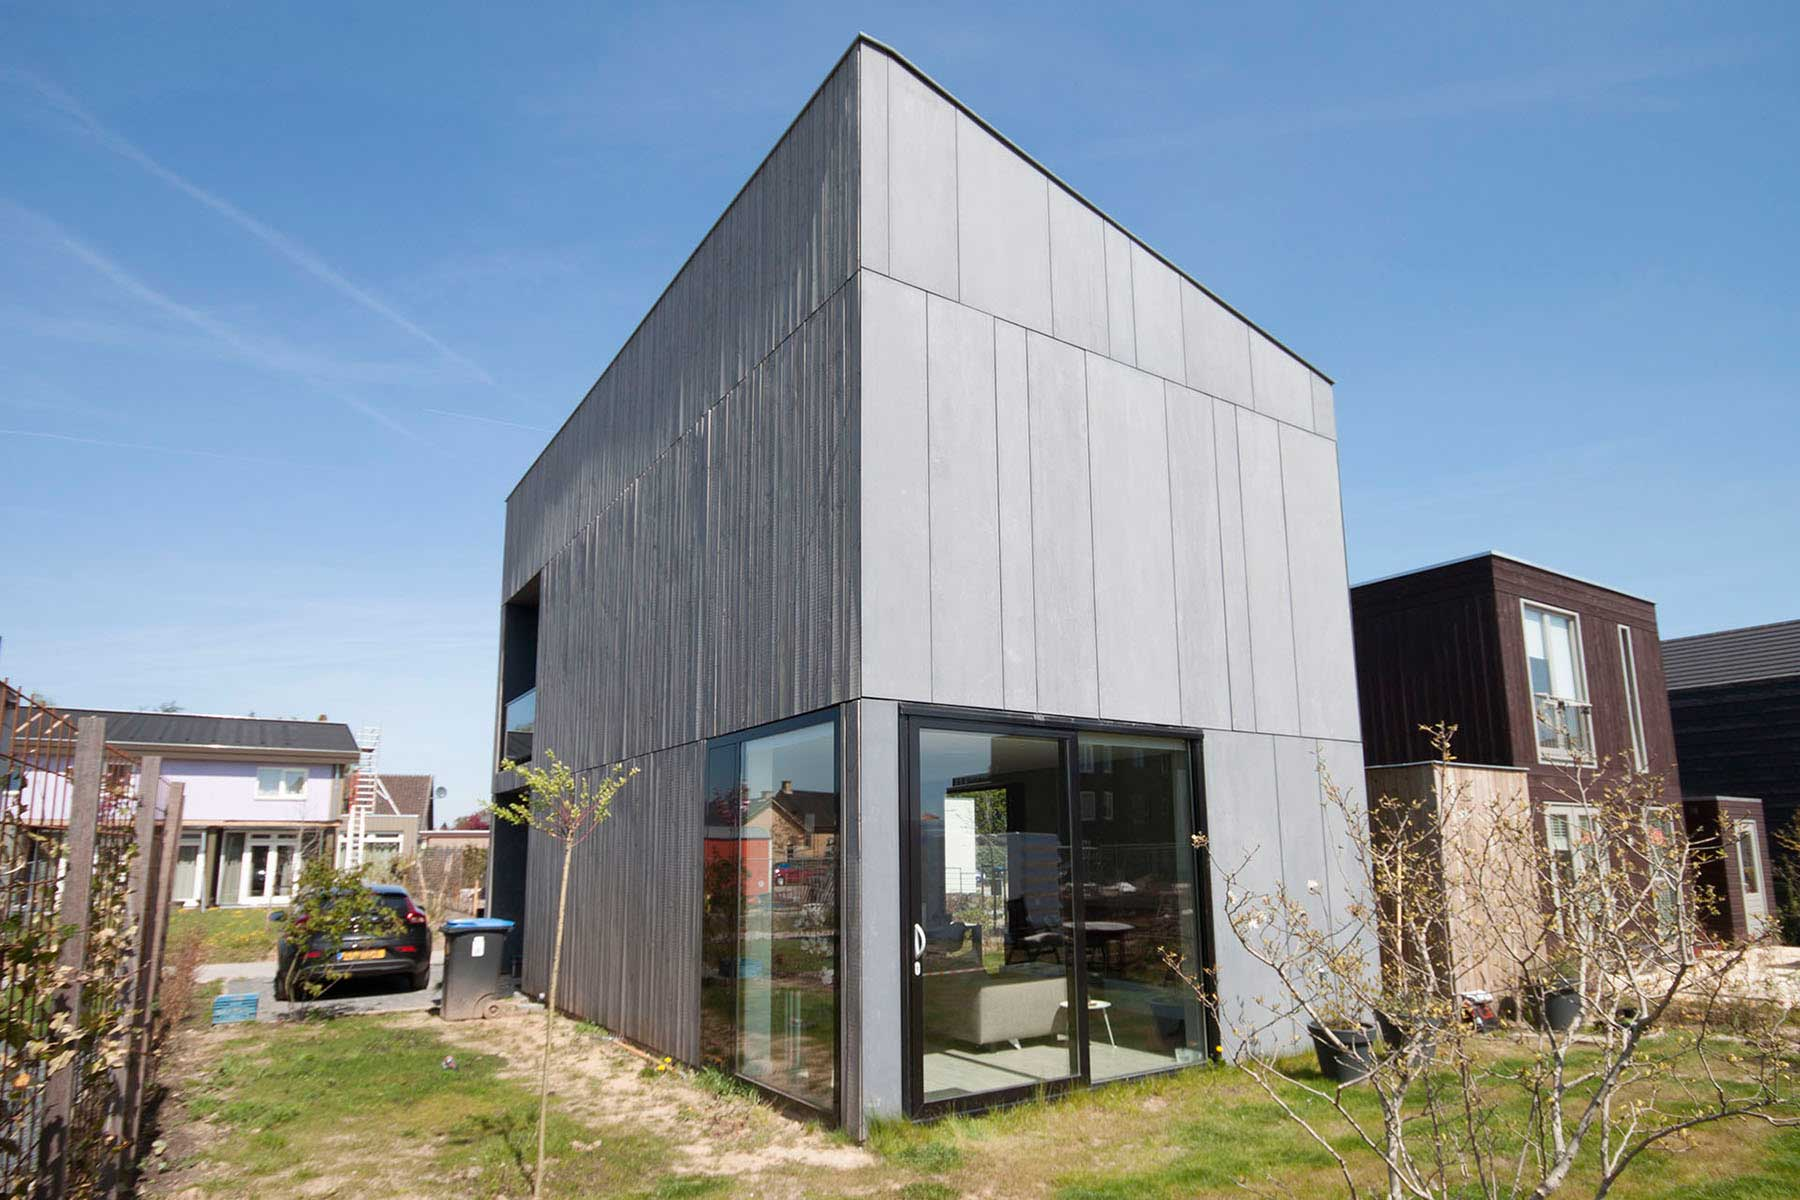 8A-Architecten-datcha-house-2-Lent-02